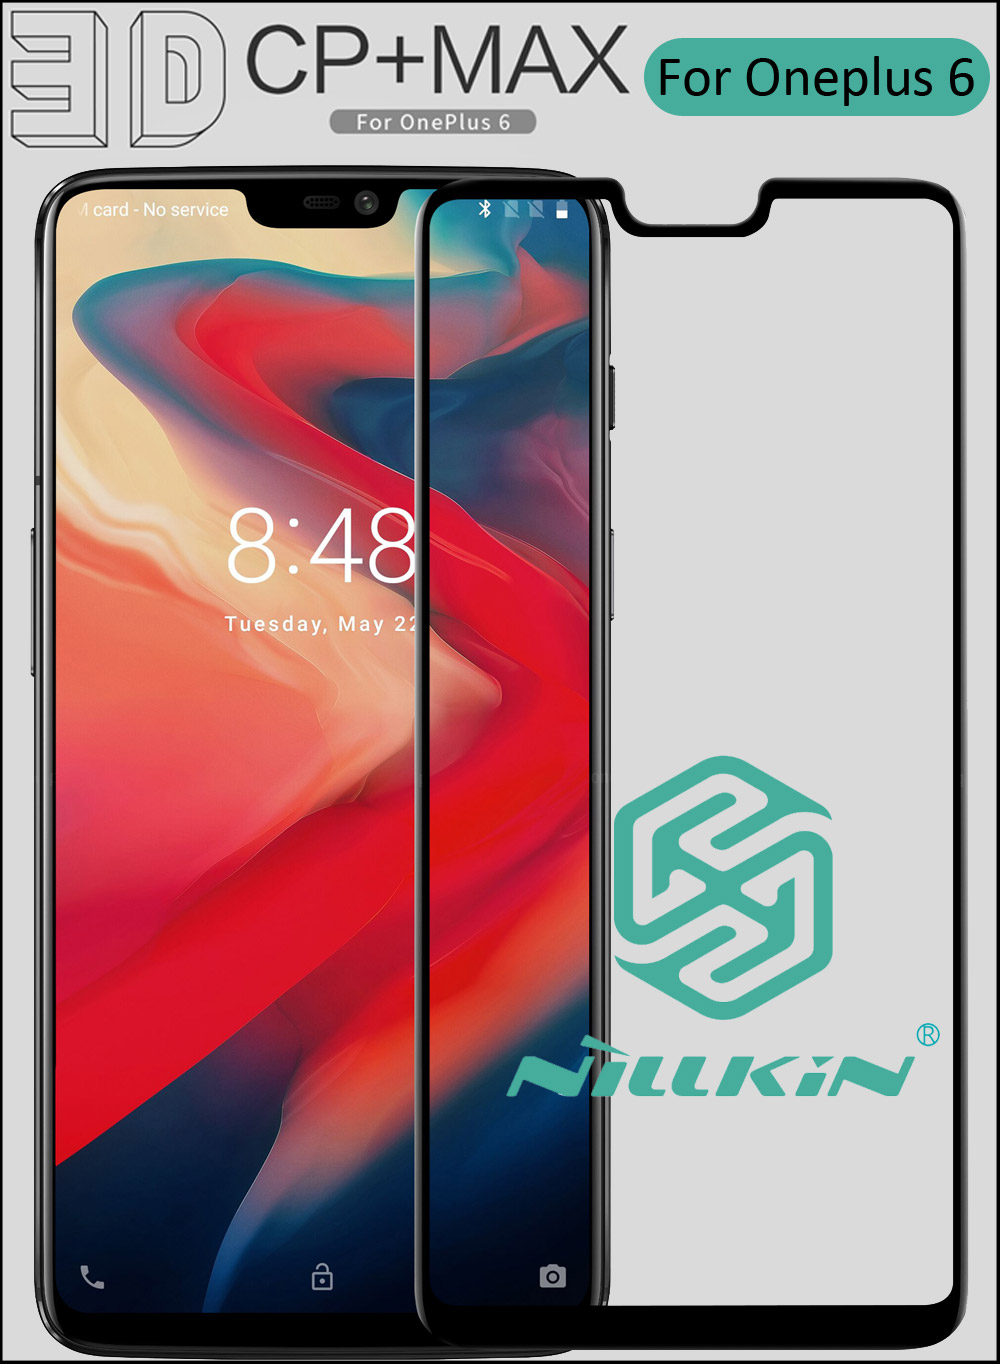 Nillkin 3D CP+ Max Tempered Glass For Oneplus 6 Full Screen Cover Curved Protective oleophobic